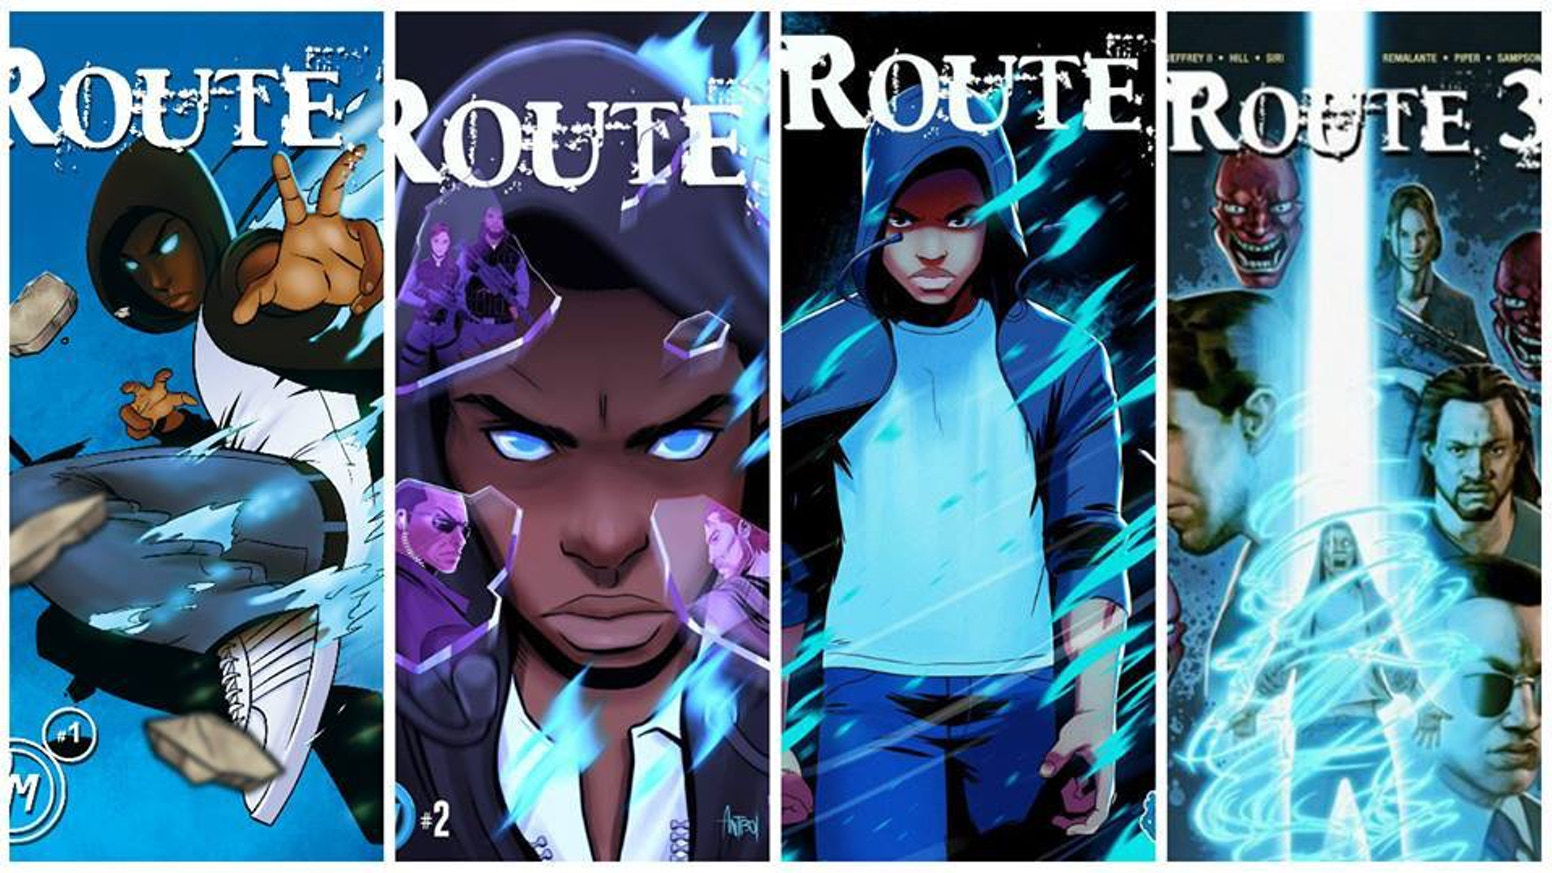 Centuries old prophecies. Shadowy government conspiracies. Super heroic action. Just a typical day for teenager Sean Anderson. Route 3.